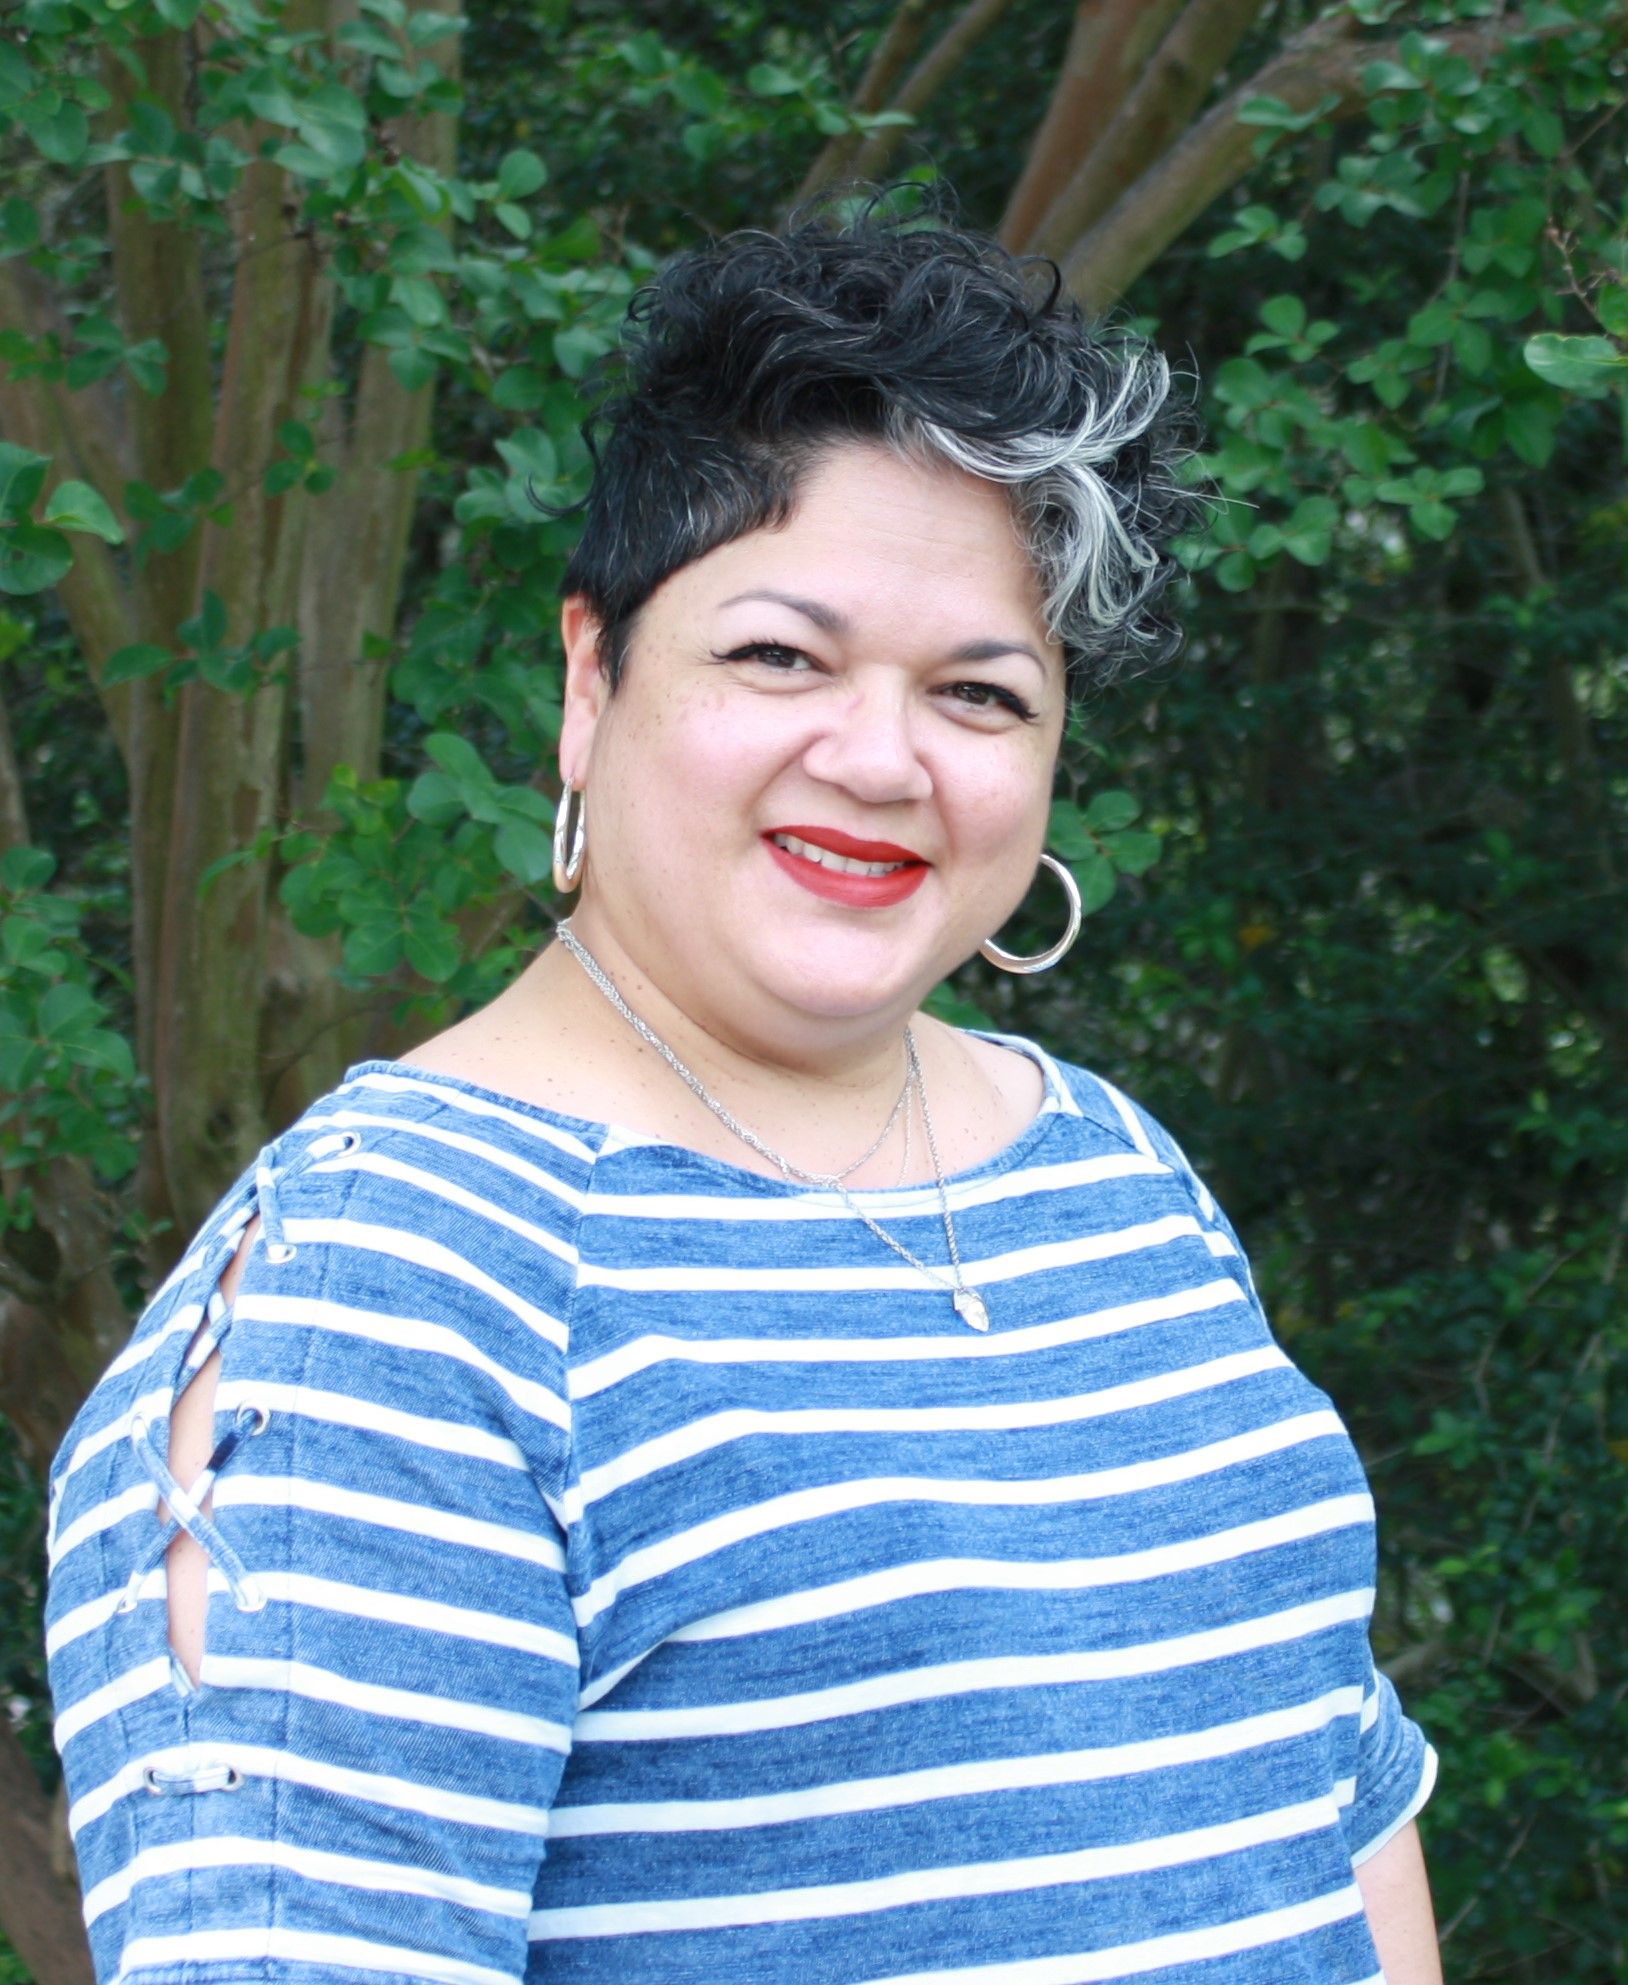 """Cheryl Rivera, MS, LMFT - Cheryl Rivera is a Licensed Marriage and Family Therapist (LMFT) and received her Master's degree in Family, Couple, and Individual Psychotherapy from Our Lady of the Lake University in San Antonio, TX in 2014. Cheryl believes every individual has the ability to heal from within with the appropriate encouragement and support of a licensed therapist. She has a strong desire to assist families, couples, and individuals utilizing the needed therapeutic approach tailored to their needs from a non-judgmental stance. She is a strength-based, systemic oriented therapist and utilizes Collaborative, Narrative, and Solution-focused approaches. Cheryl integrates techniques such as mindfulness, self-compassion, and self-empowerment. She believes in collaborating with both the client's life skills and her professional expertise to reach the desired goals in therapy. She will incorporate the individualized religion and/or spirituality and familiarize when unknown to better serve the therapeutic experience and outcome. Cheryl has experience working with at-risk youth and their families, LGBTQ, substance abuse, couples challenged with communication and intimacy issues, strained family dynamics, unresolved grief, challenges with major life changes and personality disorders such as Bipolar Disorder and Borderline Personality Disorder. She believes everyone has a resiliency they may not recognize during times of duress and tend to forget they have. She has a passion for reflecting the strengths within an individual's sharing of their stories, while assisting with coping skills and healthy communication tools. She believes therapy can be a tool to get back on the desired life path and increase one's self-esteem and positive self-regard. It is Cheryl's belief there is no """"one truth"""" and being open to exploring the client's perspective with no personal biases. She enjoys reading, exploring new territories, traveling, dancing, listening to an array of music, watc"""